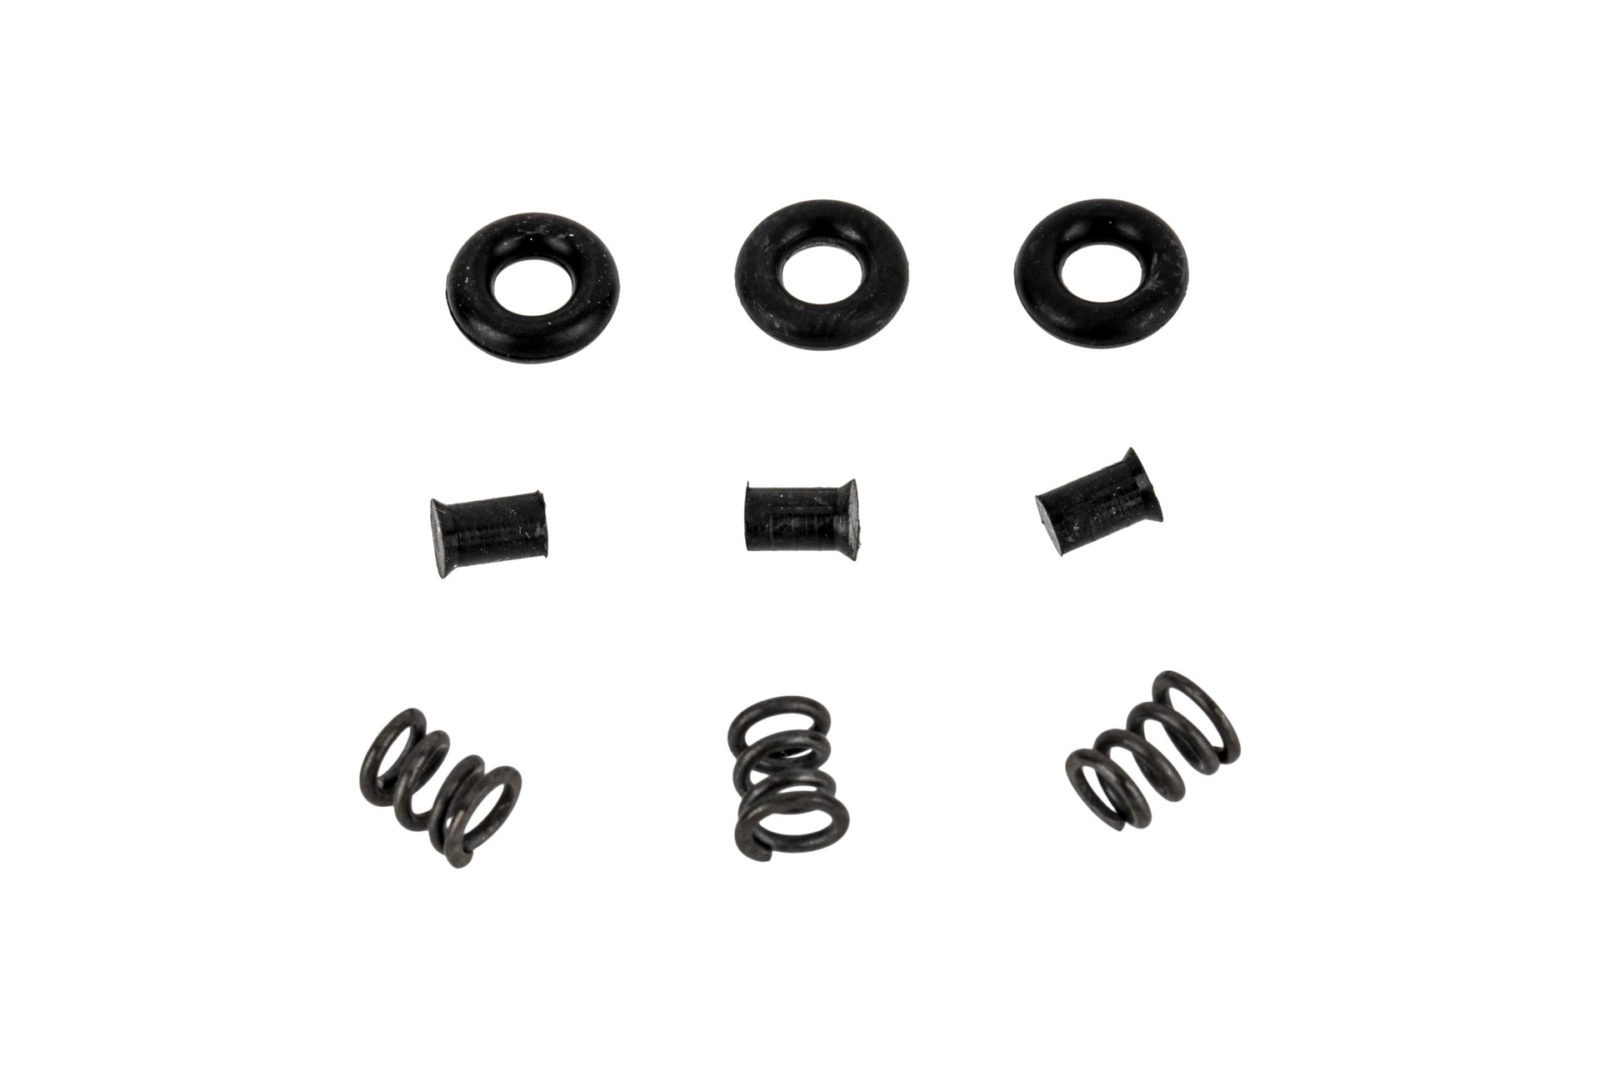 Sprinco M4 Ar 15 Enhanced 4 Coil Extractor Spring Upgrade Kit 3 Pack Ar15discounts